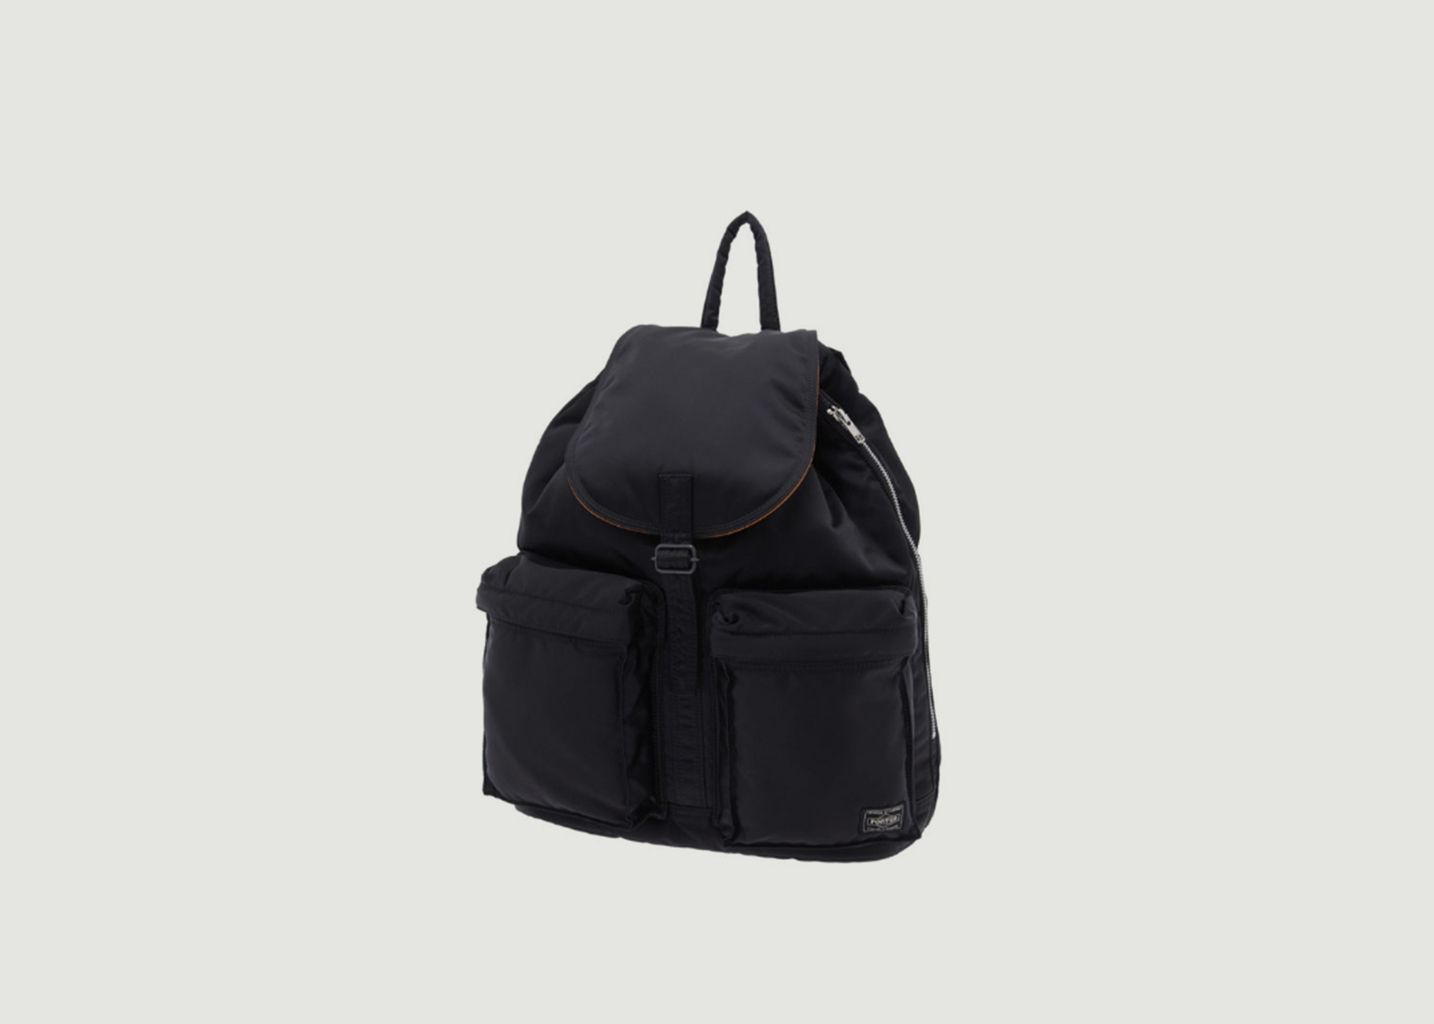 Tanker Backpack BlackPorter Yoshida  01683f117c0e2